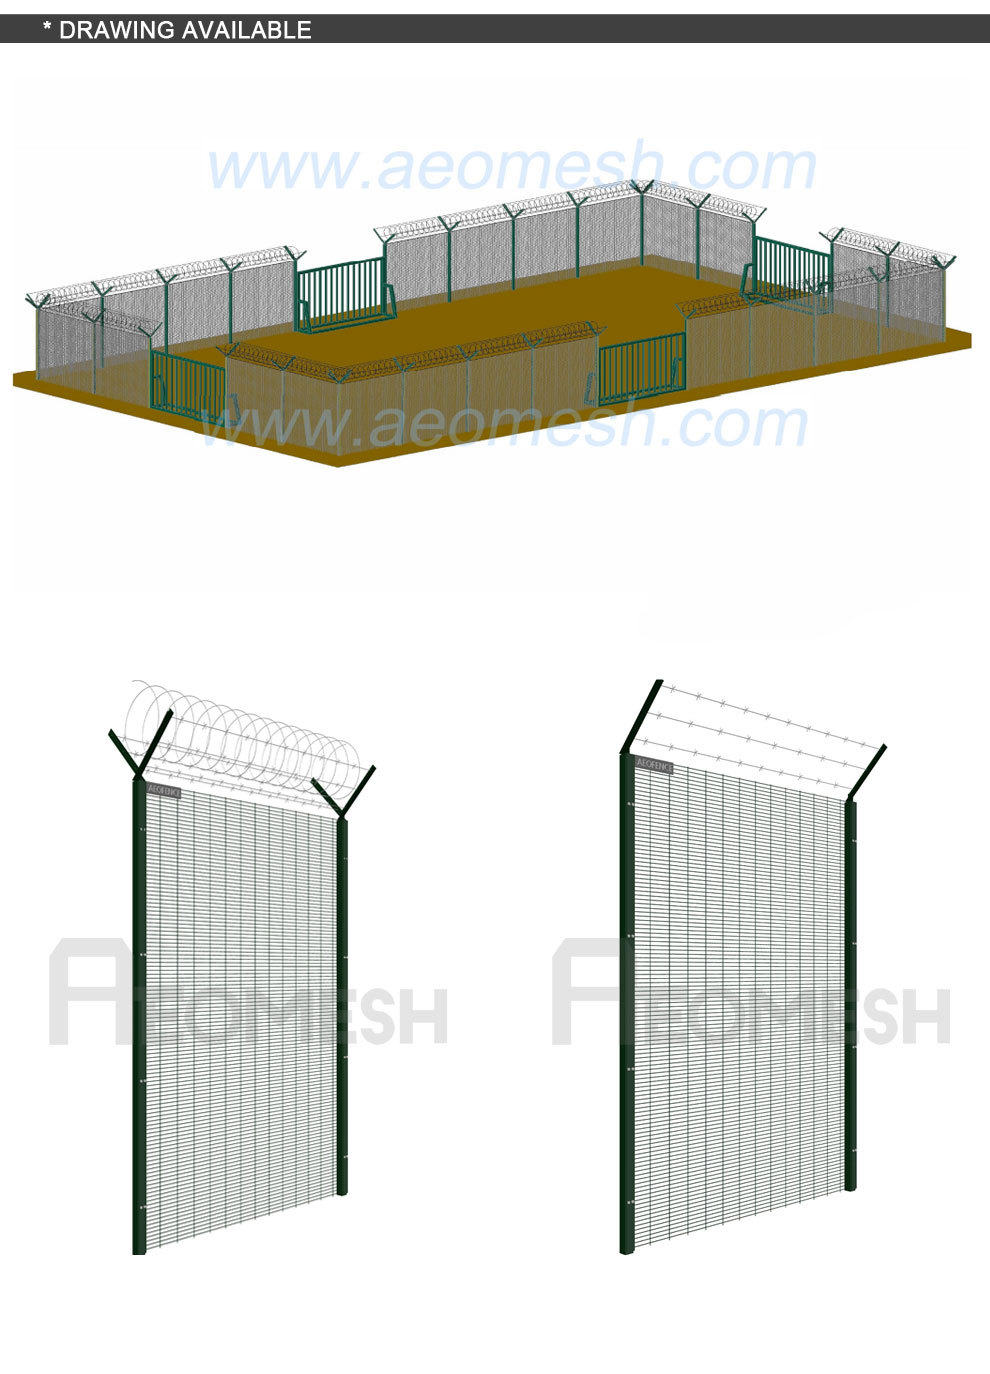 358 Mesh Panel Fencing Pison 358 High Security Fence Panel Factory